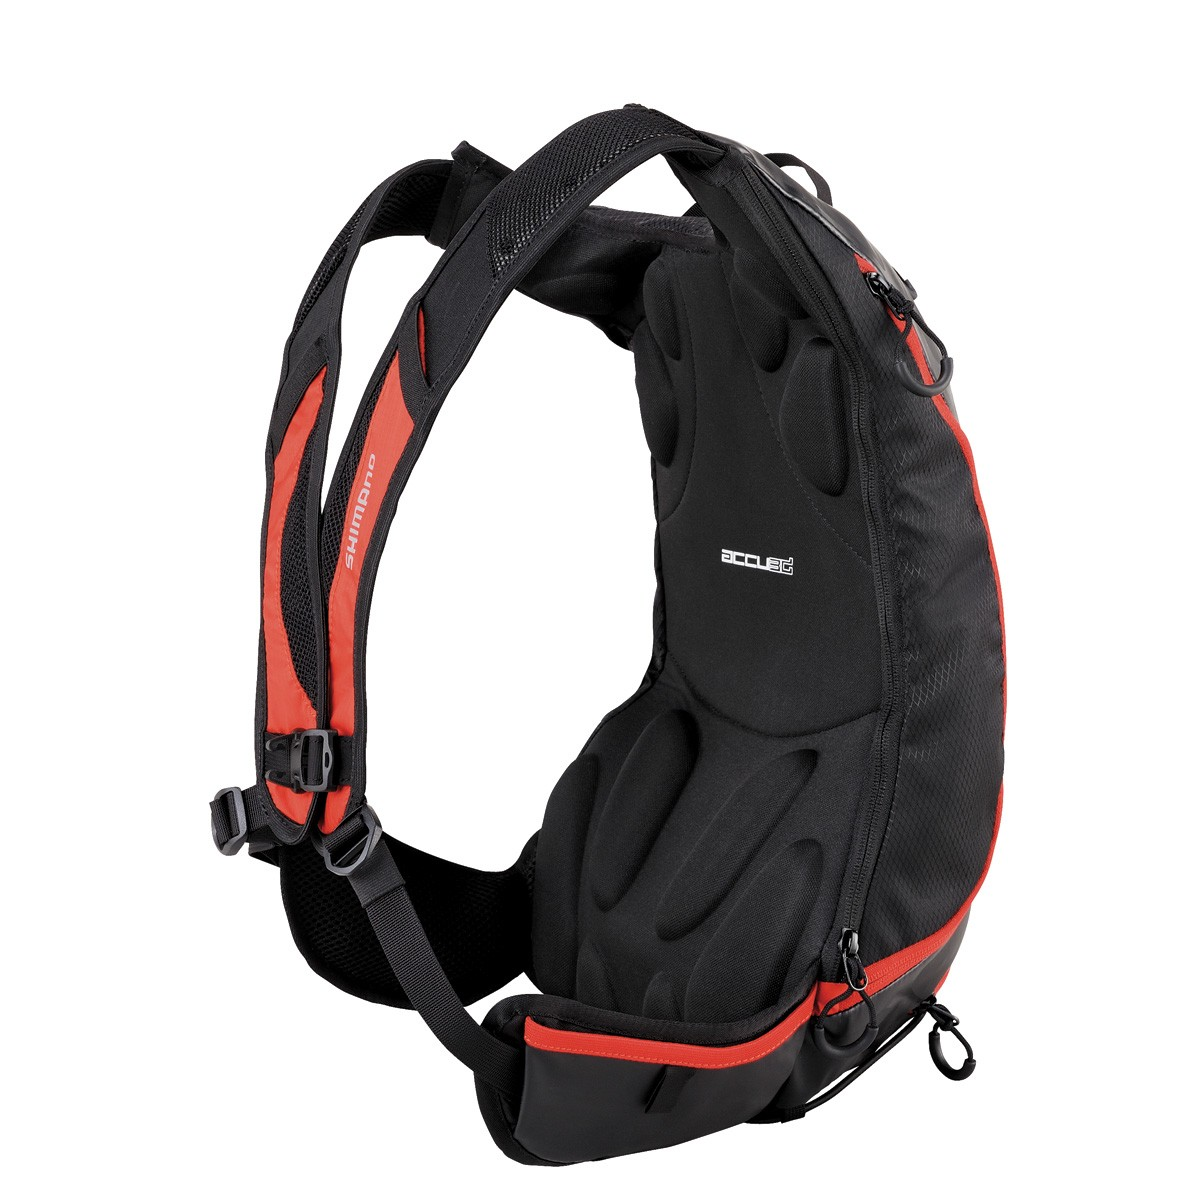 The Unzen hydration pack features unisex, meet-in-the-middle straps that adjust for width at the shoulders as well as height